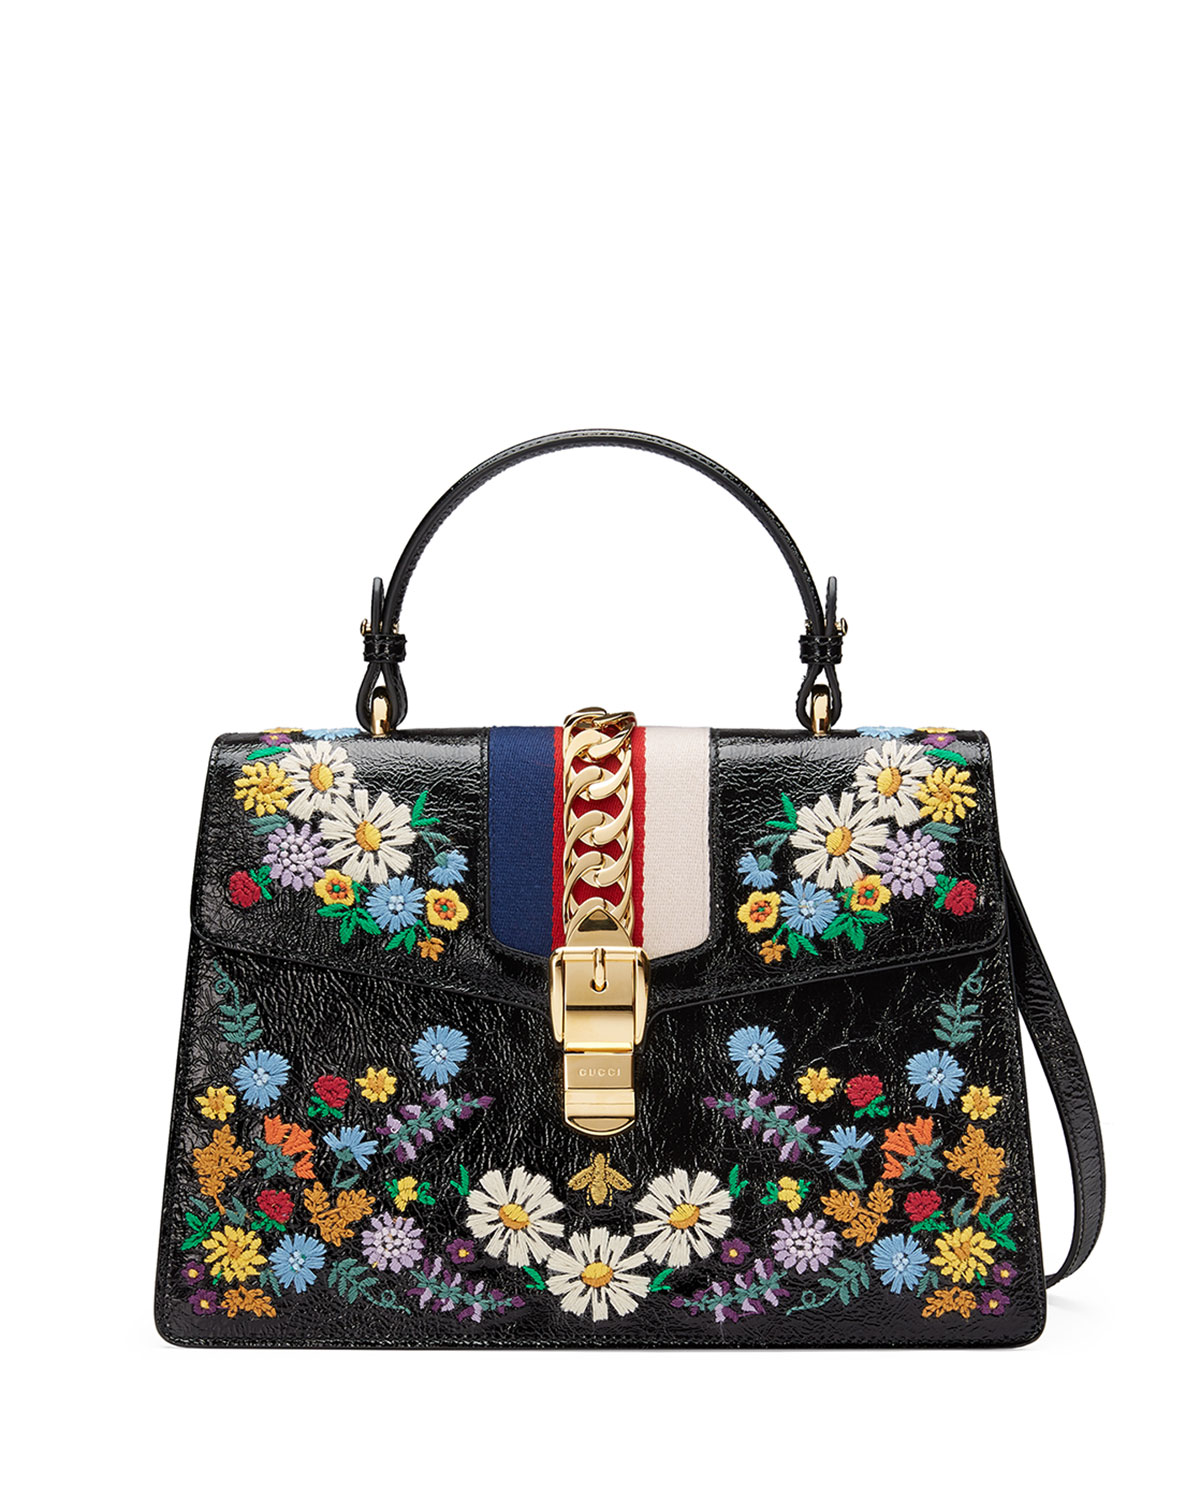 0cdad270f849 Gucci Sylvie Medium Floral Leather Top-Handle Satchel Bag | Neiman ...